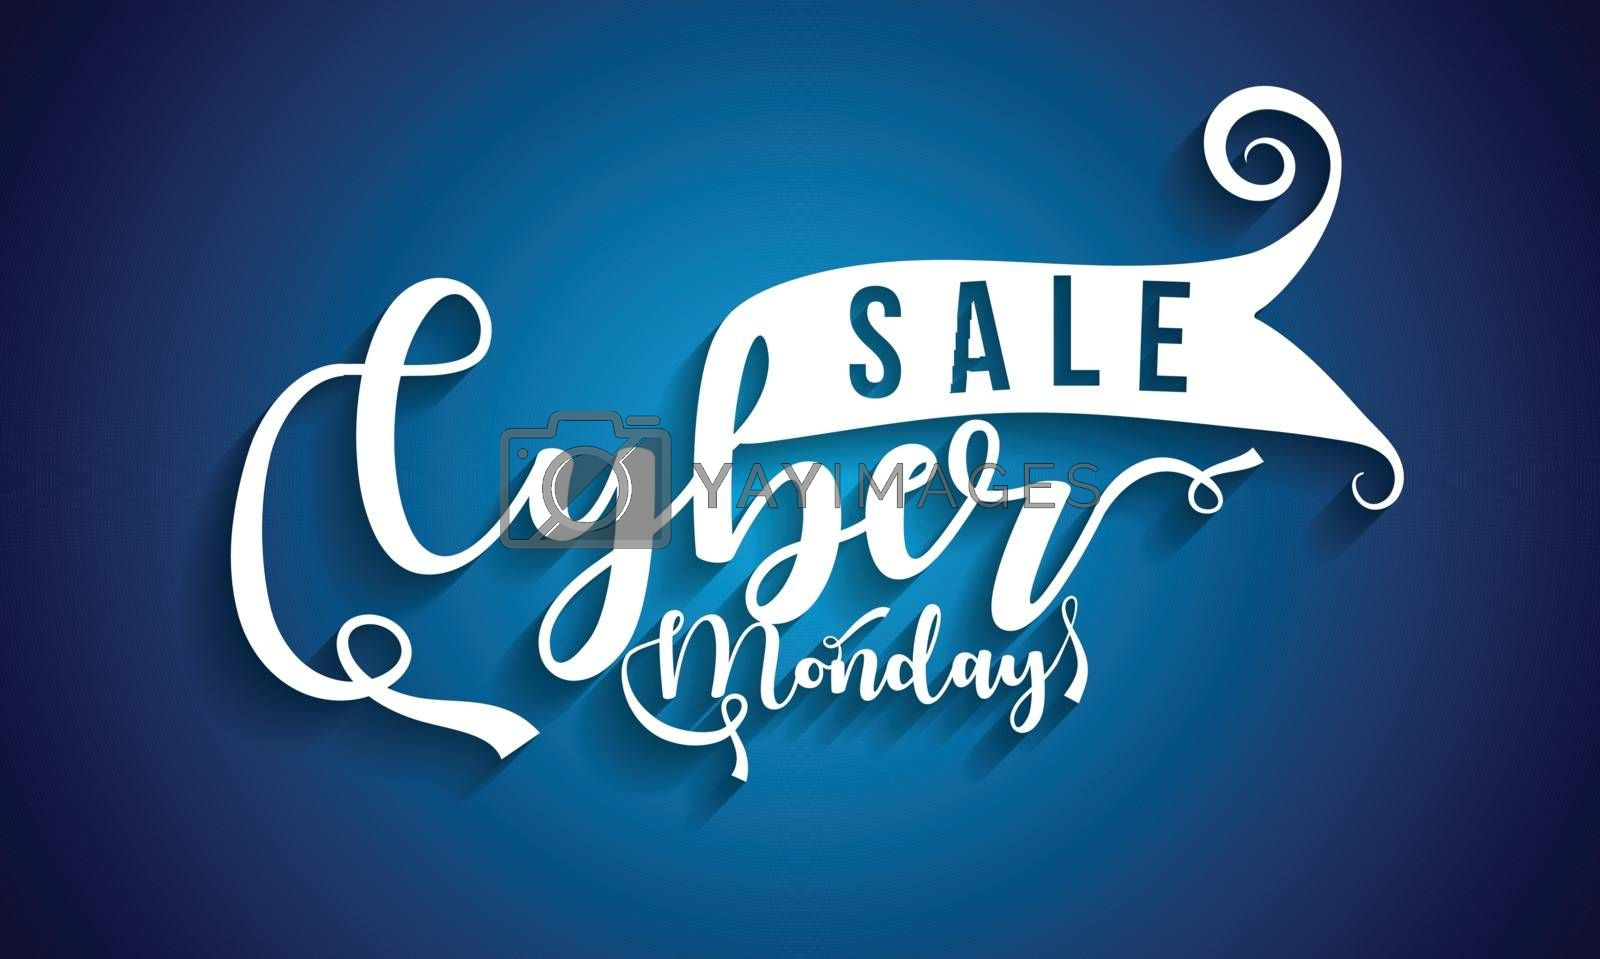 Creative text Cyber Monday Sale on white background. Poster or template design for advertisement concept.